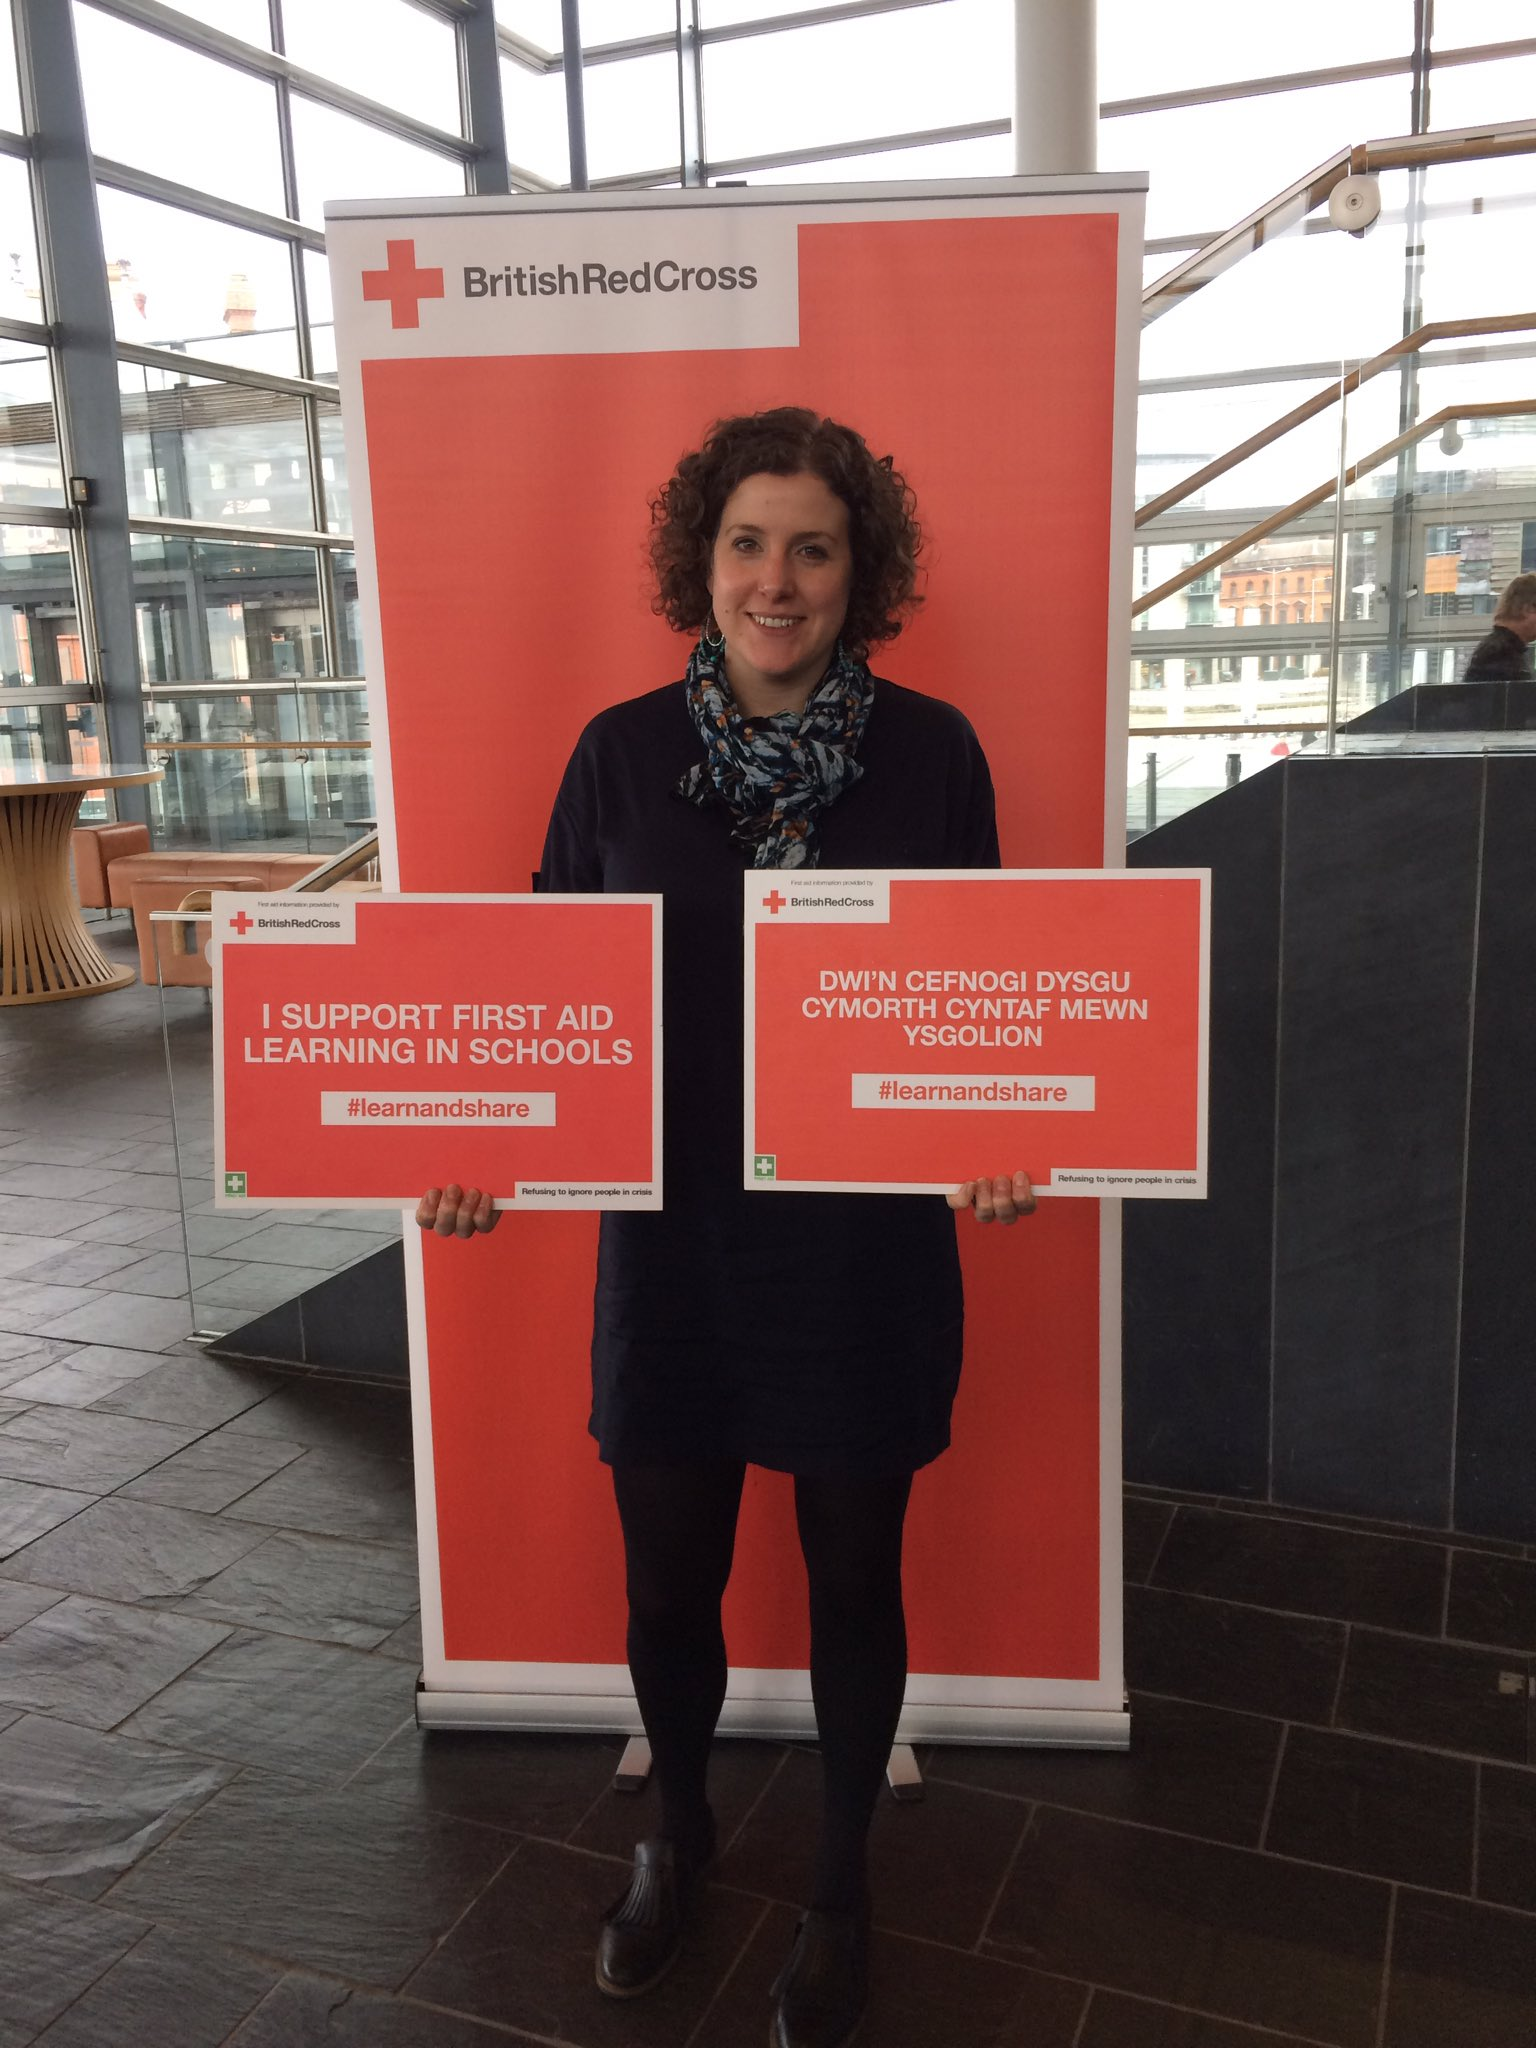 Thanks for supporting our first aid training for all campaign at the Senedd today @cerysfurlong #LearnAndShare https://t.co/KE6xfkzHiM